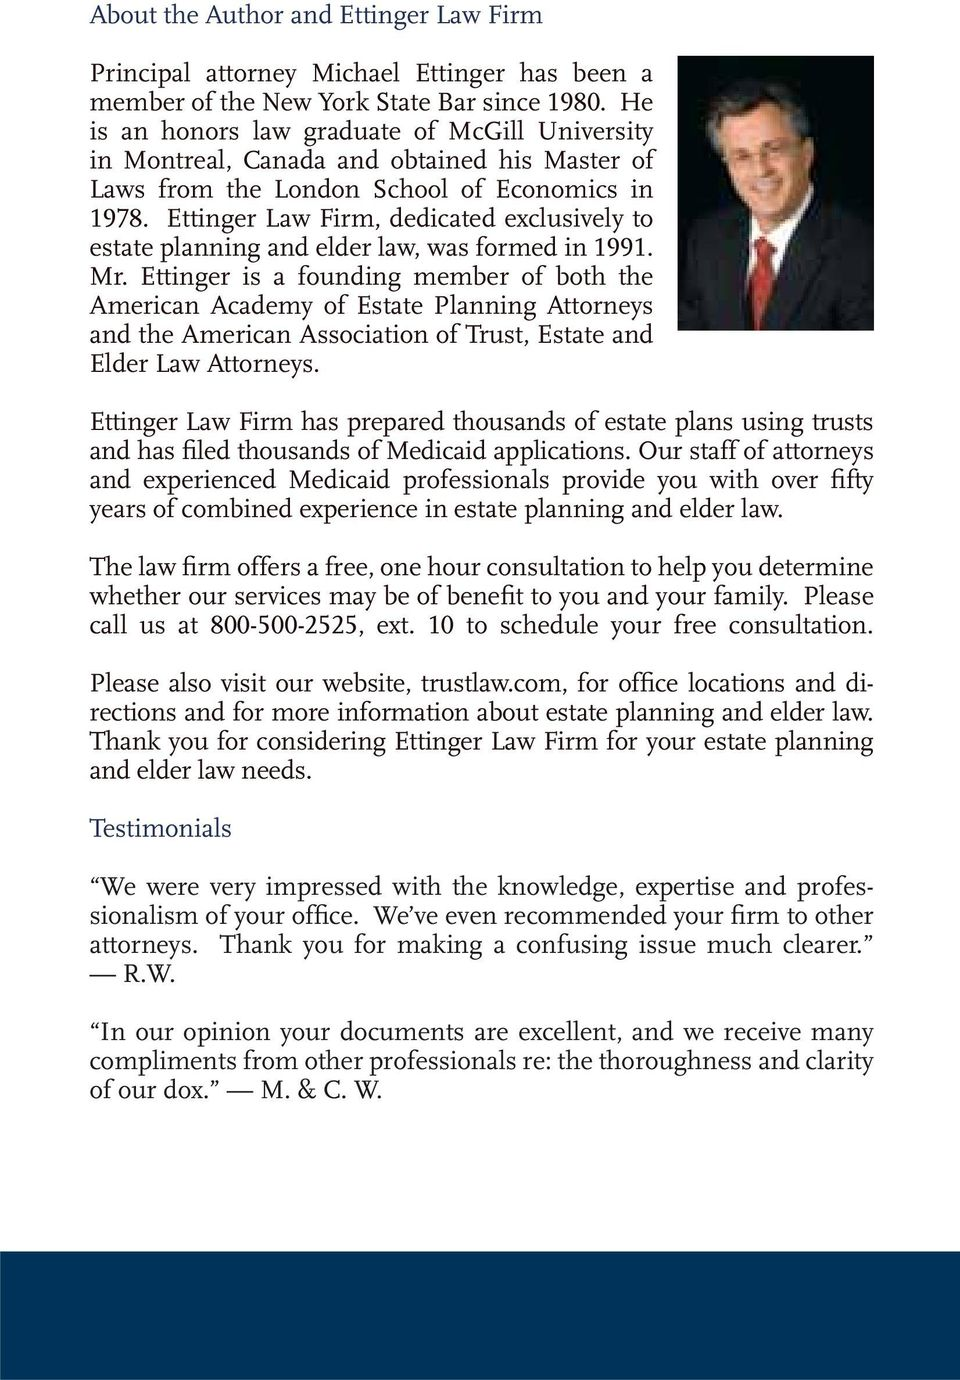 Ettinger Law Firm, dedicated exclusively to estate planning and elder law, was formed in 1991. Mr.